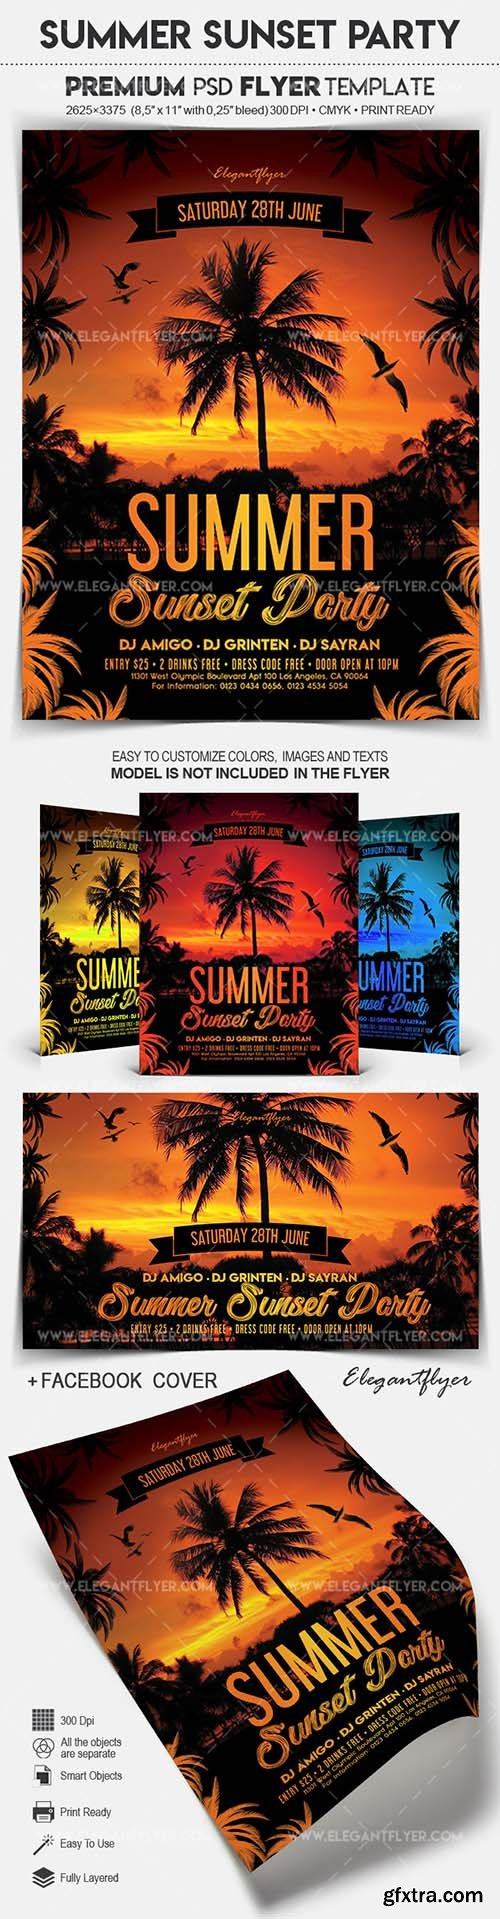 Summer Sunset Party - Flyer PSD Template